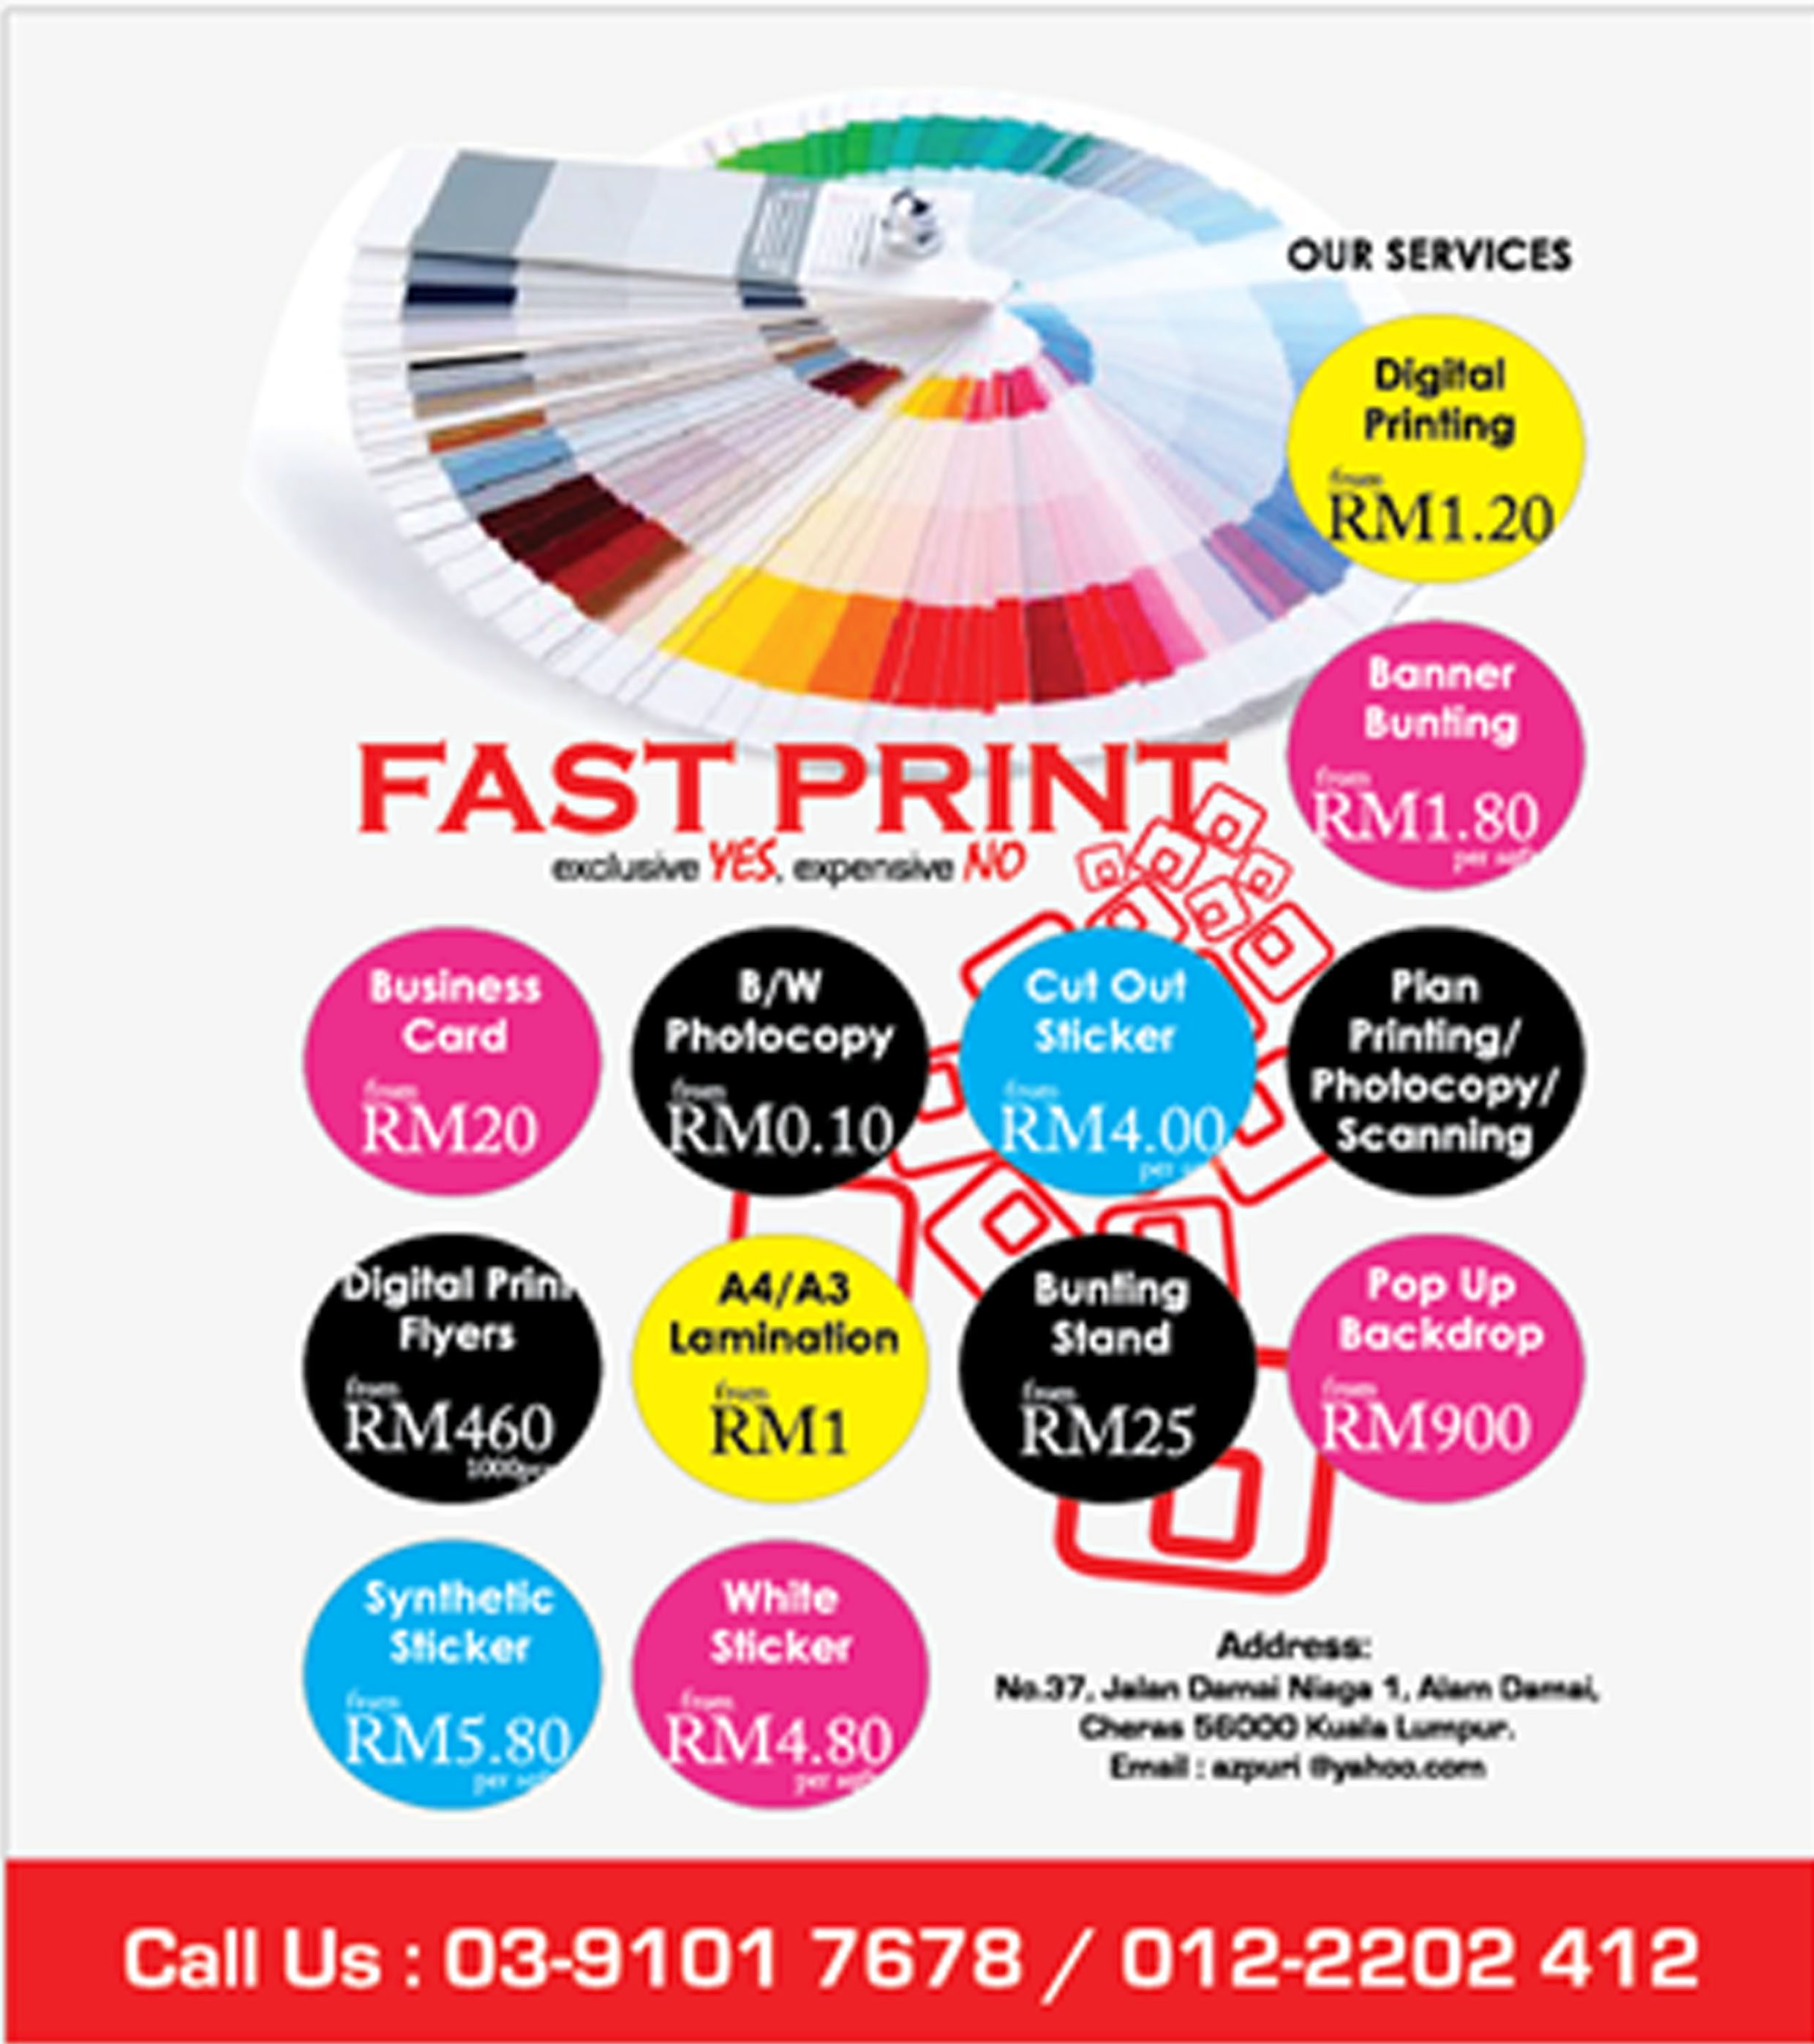 fast print exclusive yes expensive no